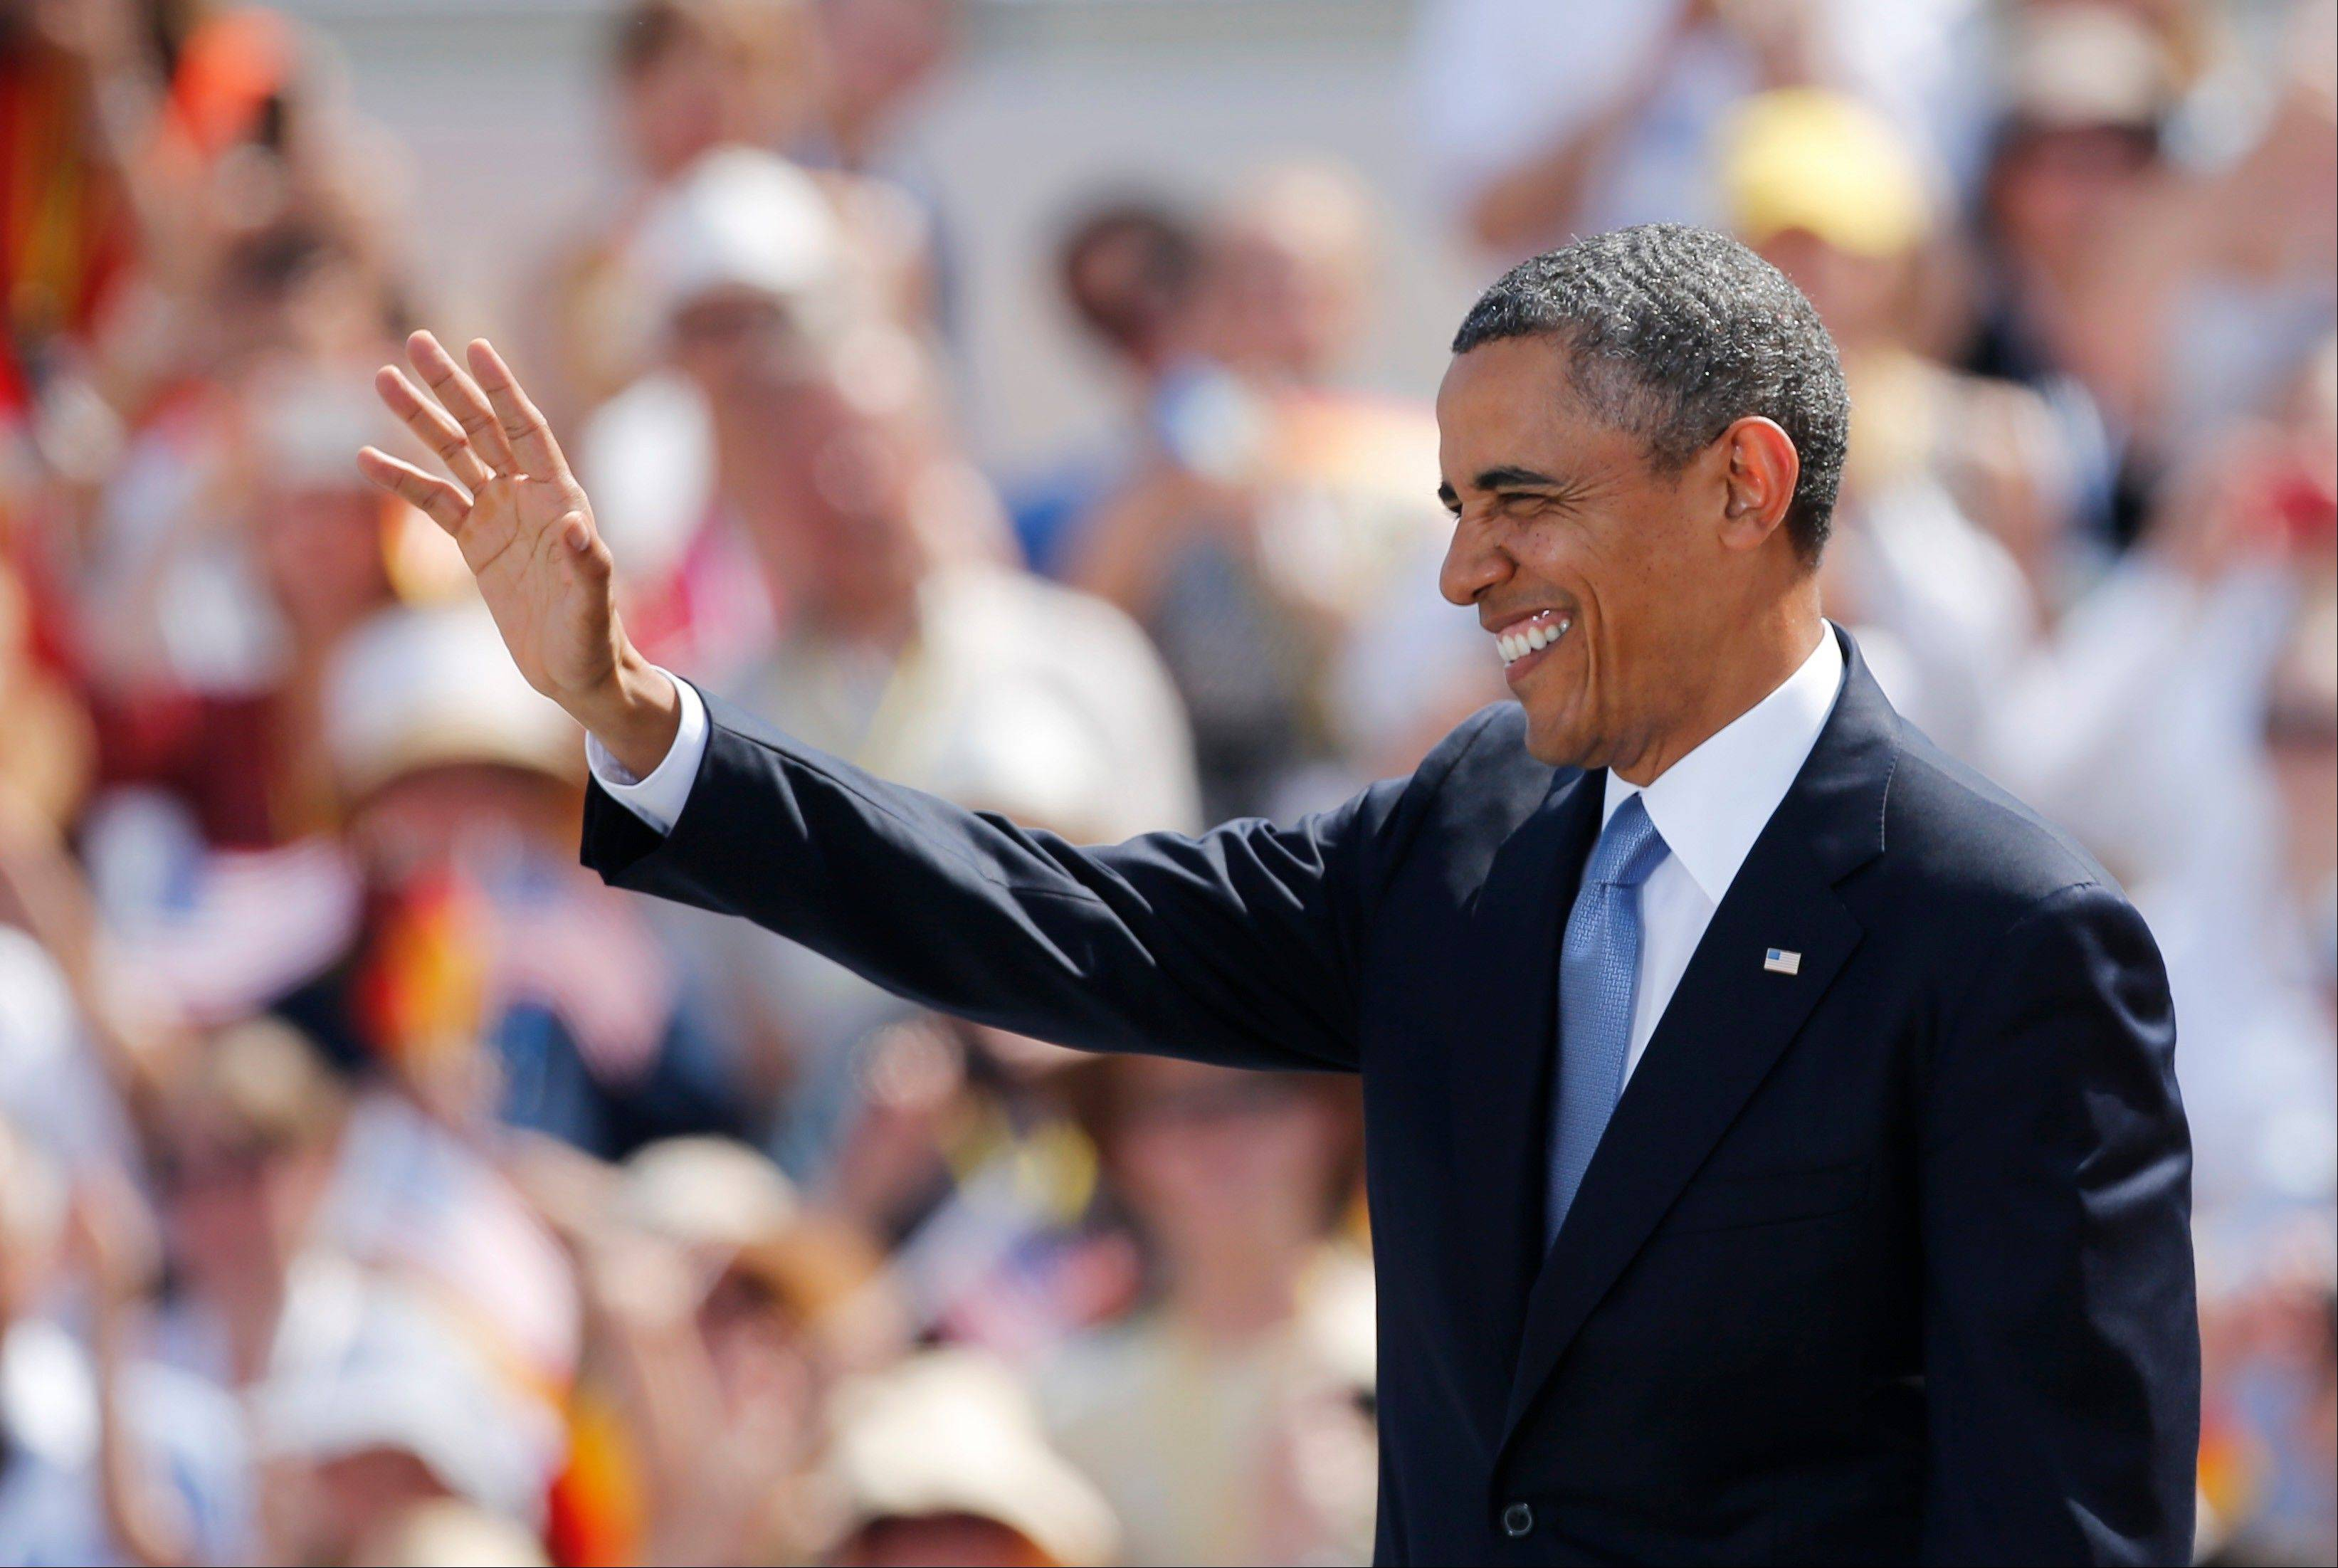 President Barack Obama waves as he arrives for a speech at Brandenburg Gate where he is to deliver a speech in Berlin Wednesday, June 19, 2013. Obama is on a two-day official visit to the German capital.